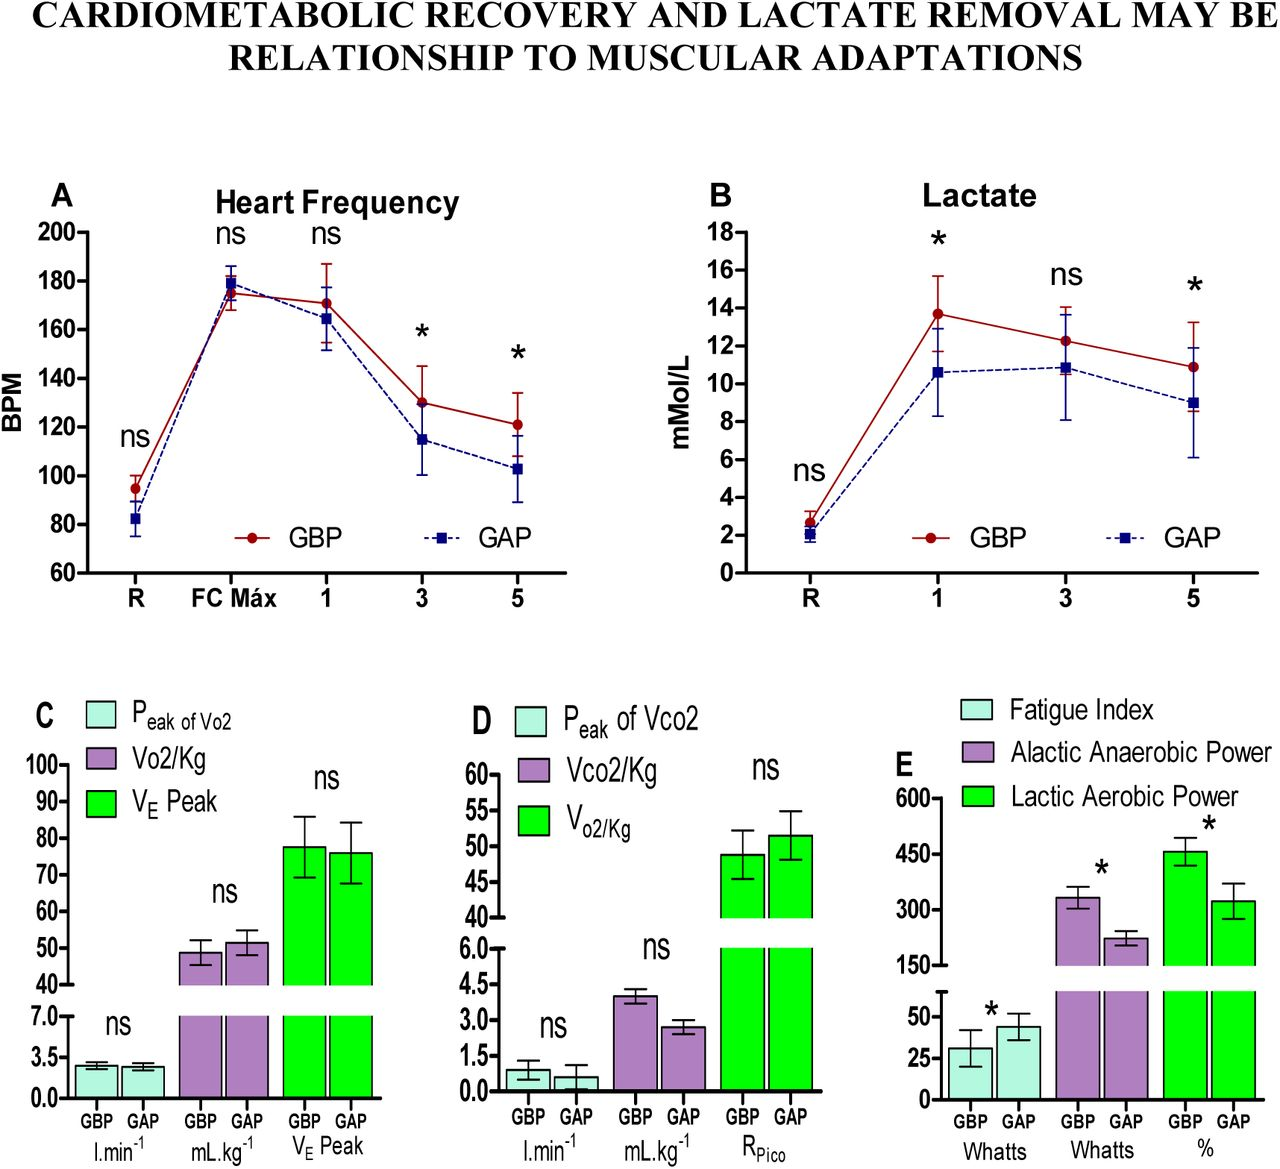 Cardiometabolic Recovery and Lactate Removal May be Related to